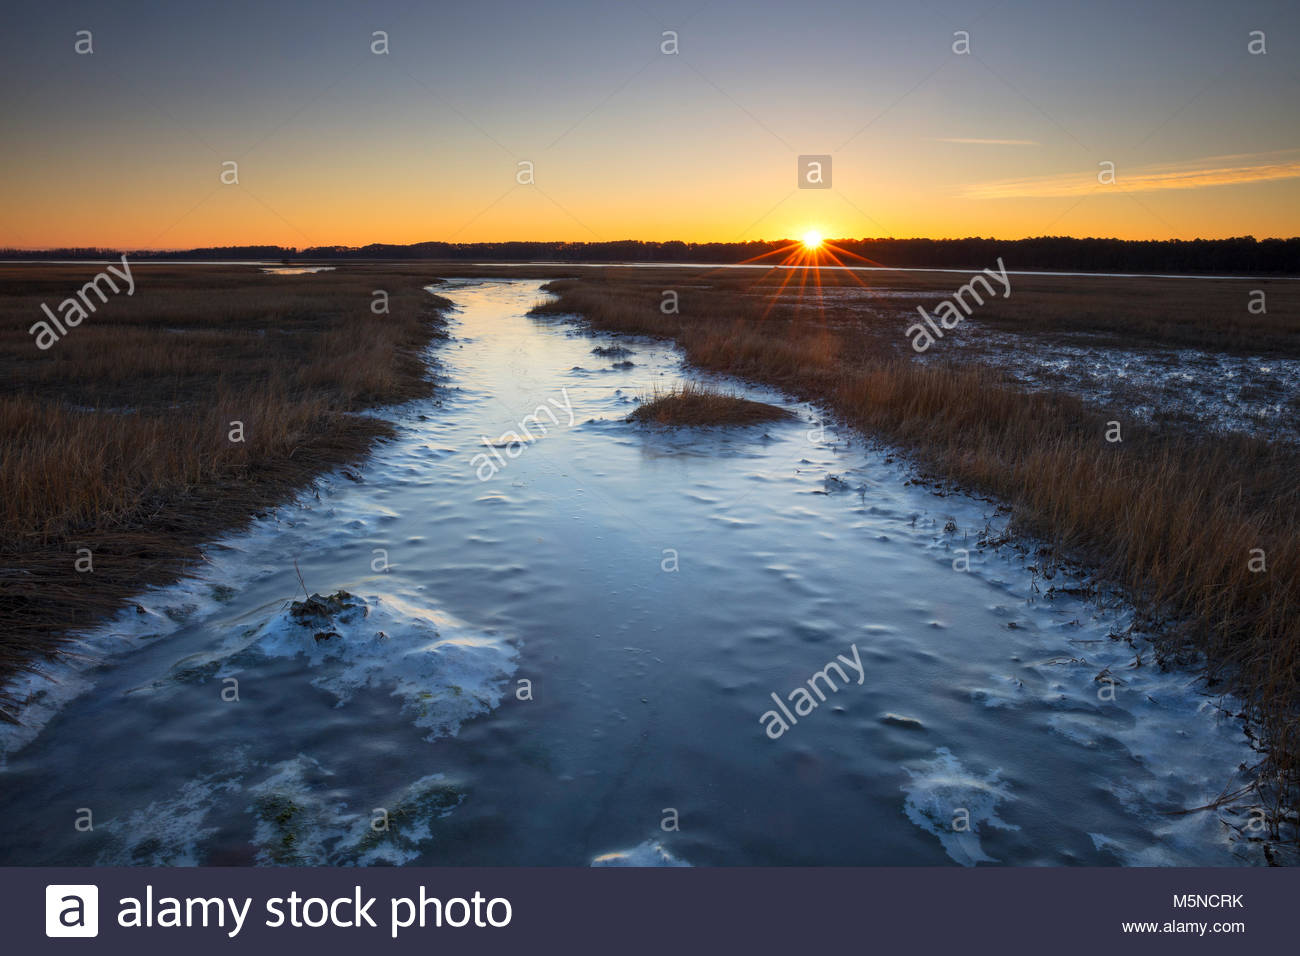 The sun rises over the ice-covered Assateague Channel, which separates the islands of Assateague and Chincoteague - Stock Image